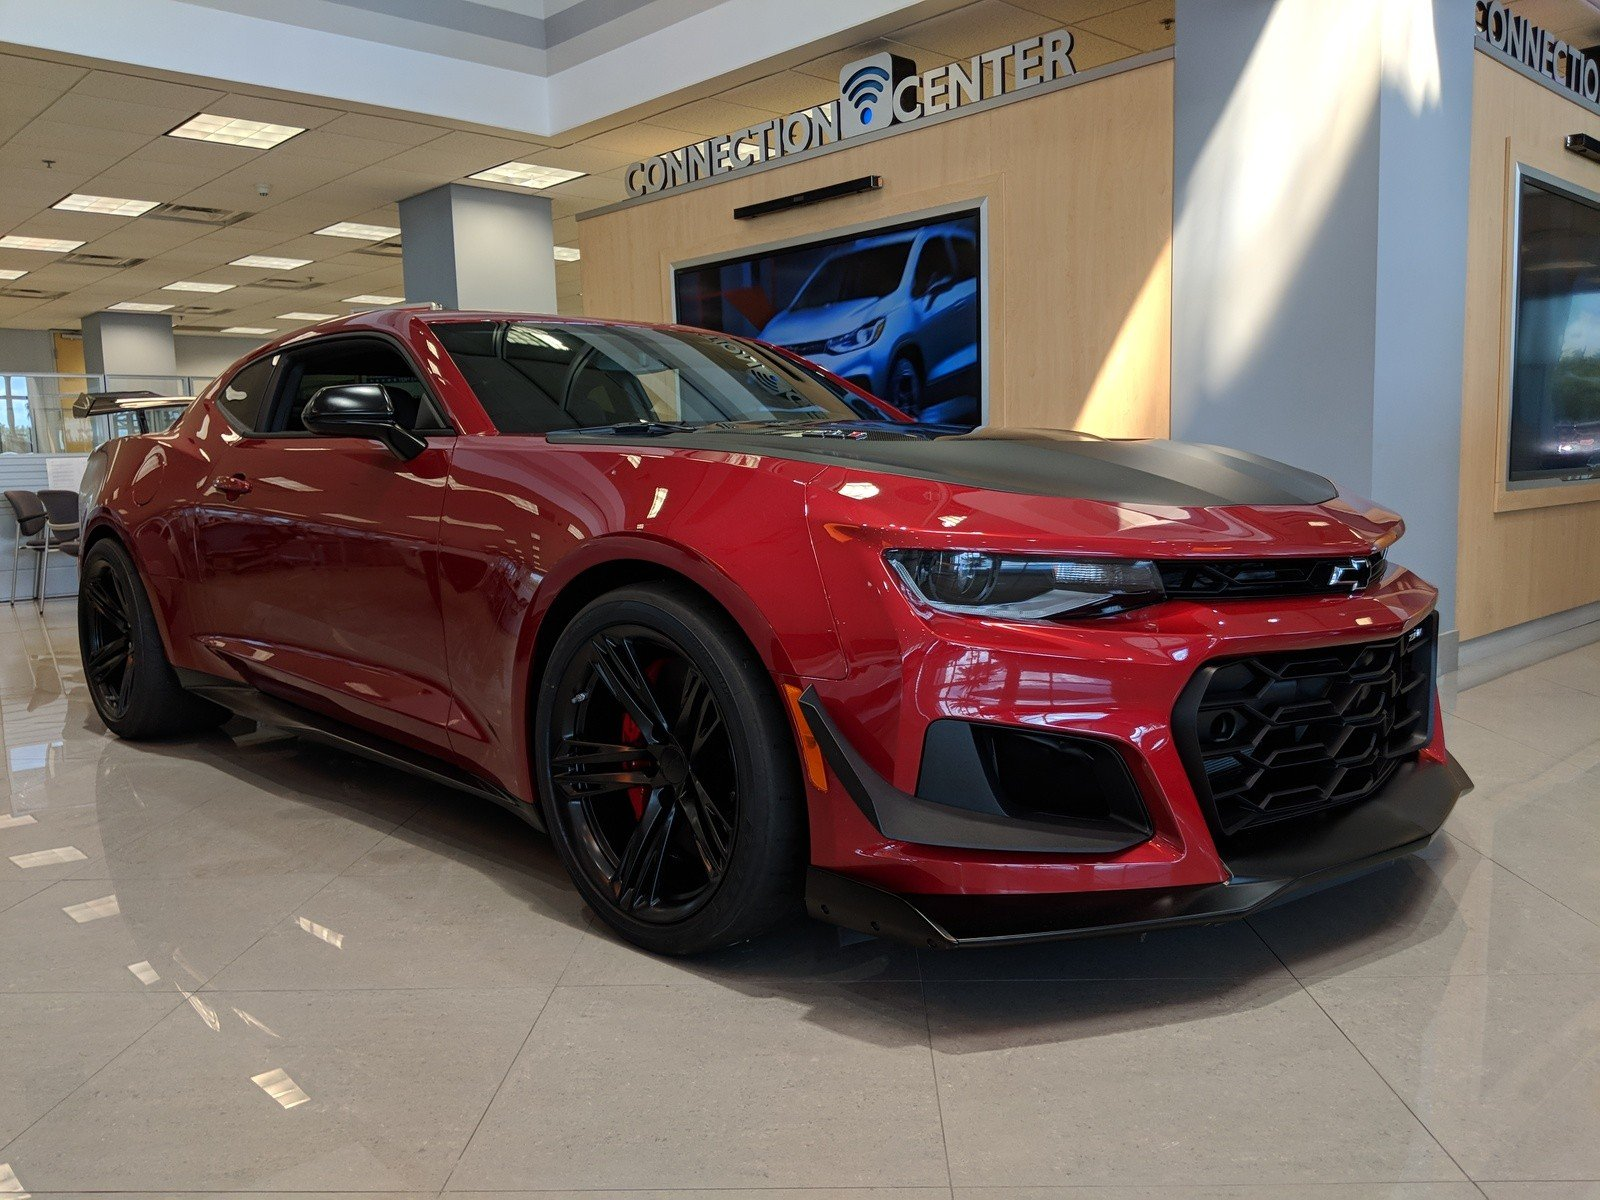 New Chevrolet Camaro ZL Dr Car In Plant City J - Plant city car show 2018